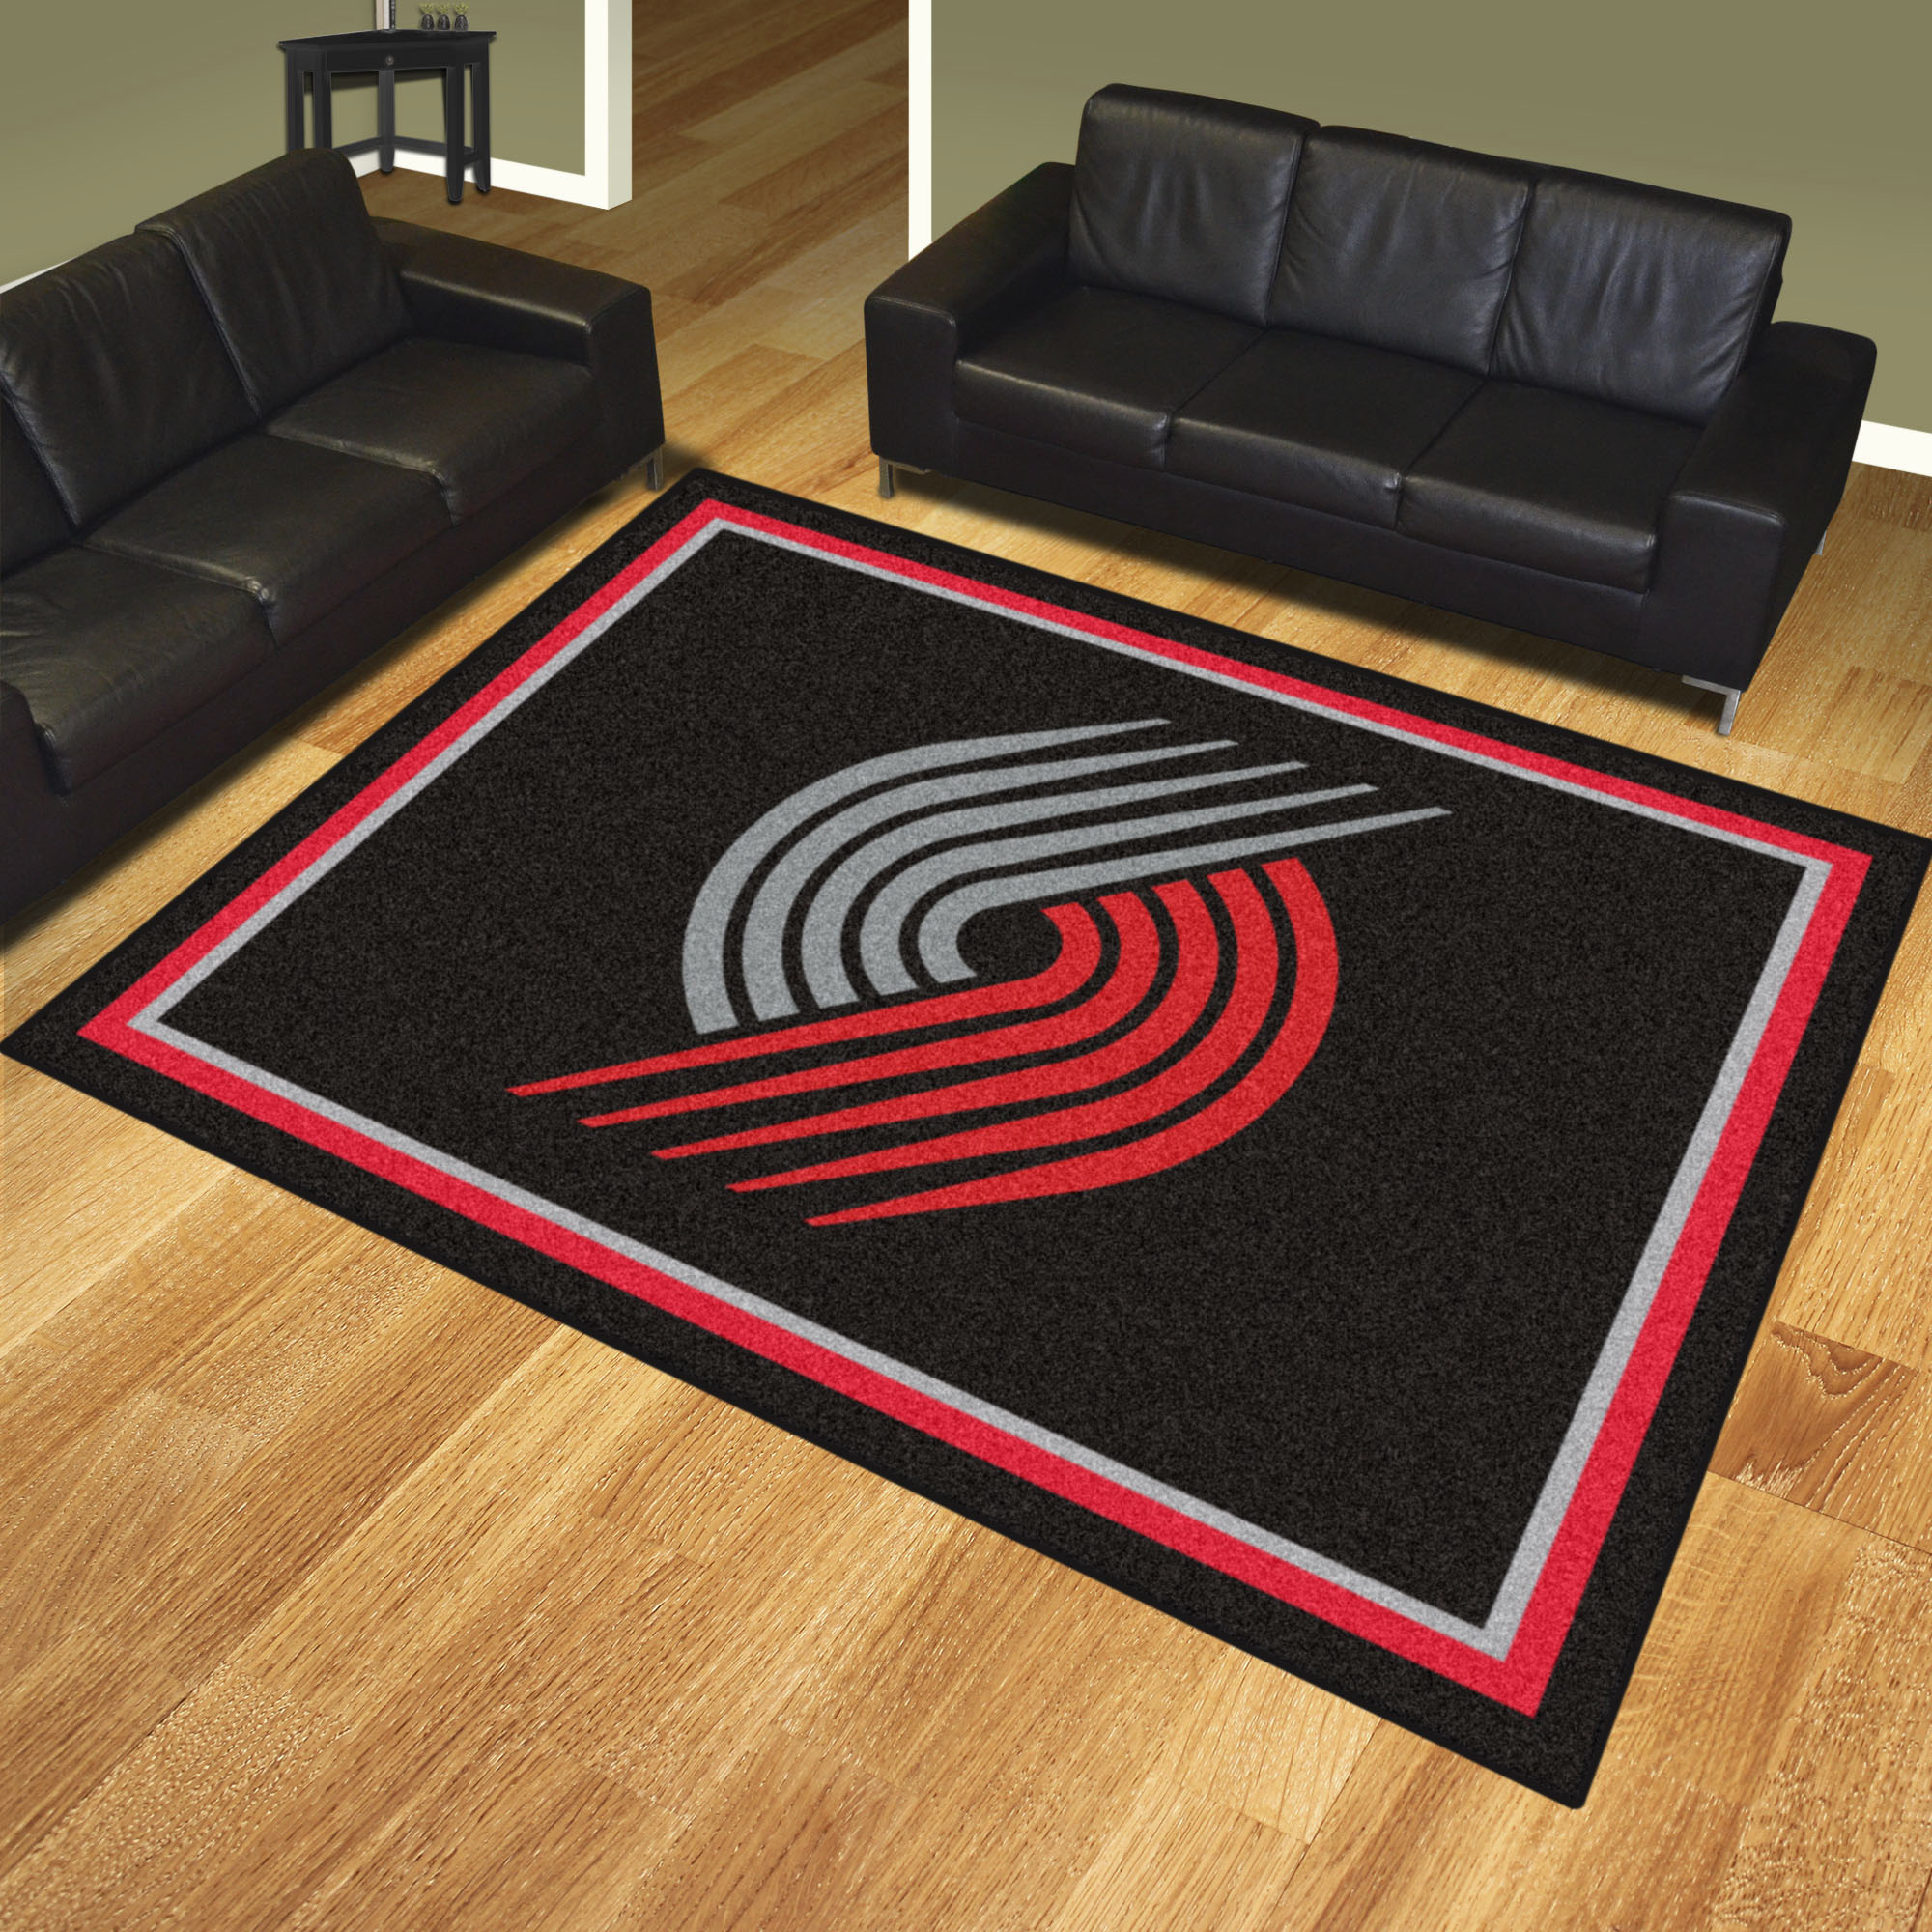 Portland Trail Blazers Ultra Plush 8x10 Area Rug